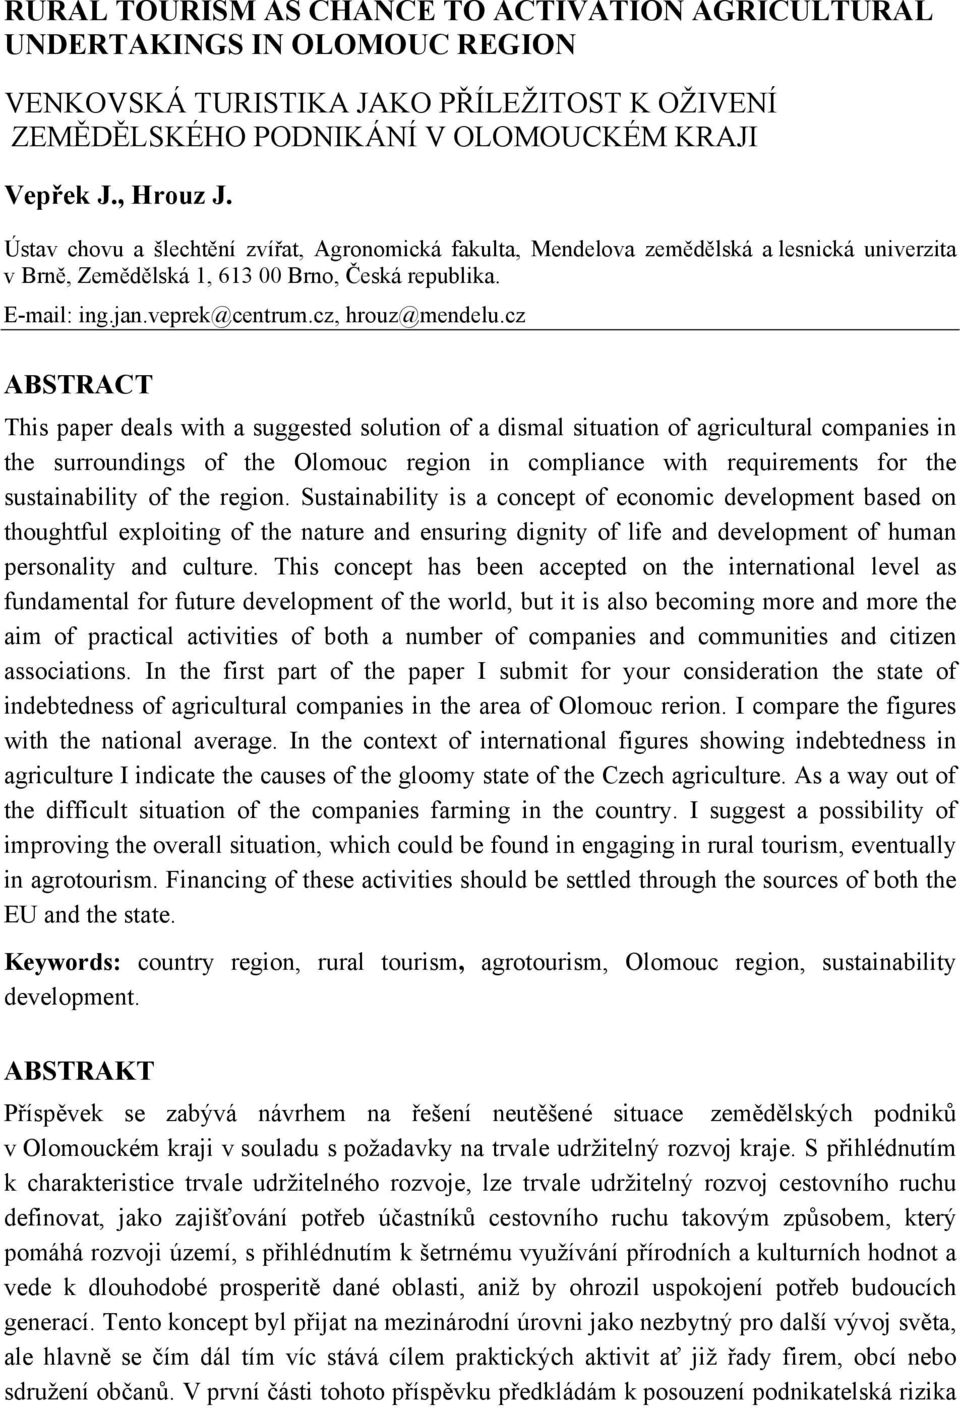 cz ABSTRACT This paper deals with a suggested solution of a dismal situation of agricultural companies in the surroundings of the Olomouc region in compliance with requirements for the sustainability